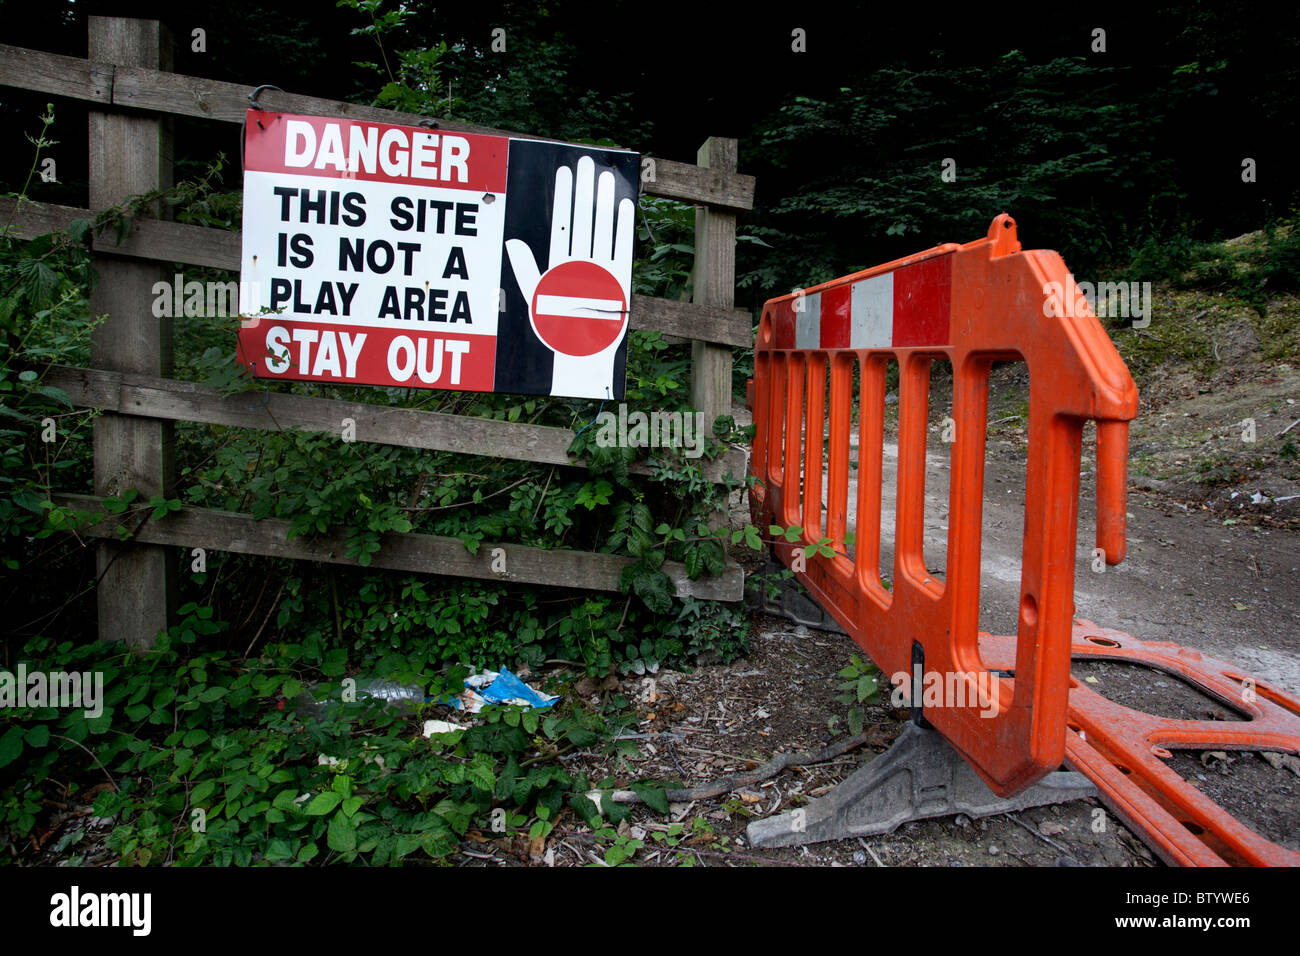 Danger this site is not a play area, stay out sign on the outskirts of Brighton, East Sussex, UK. - Stock Image